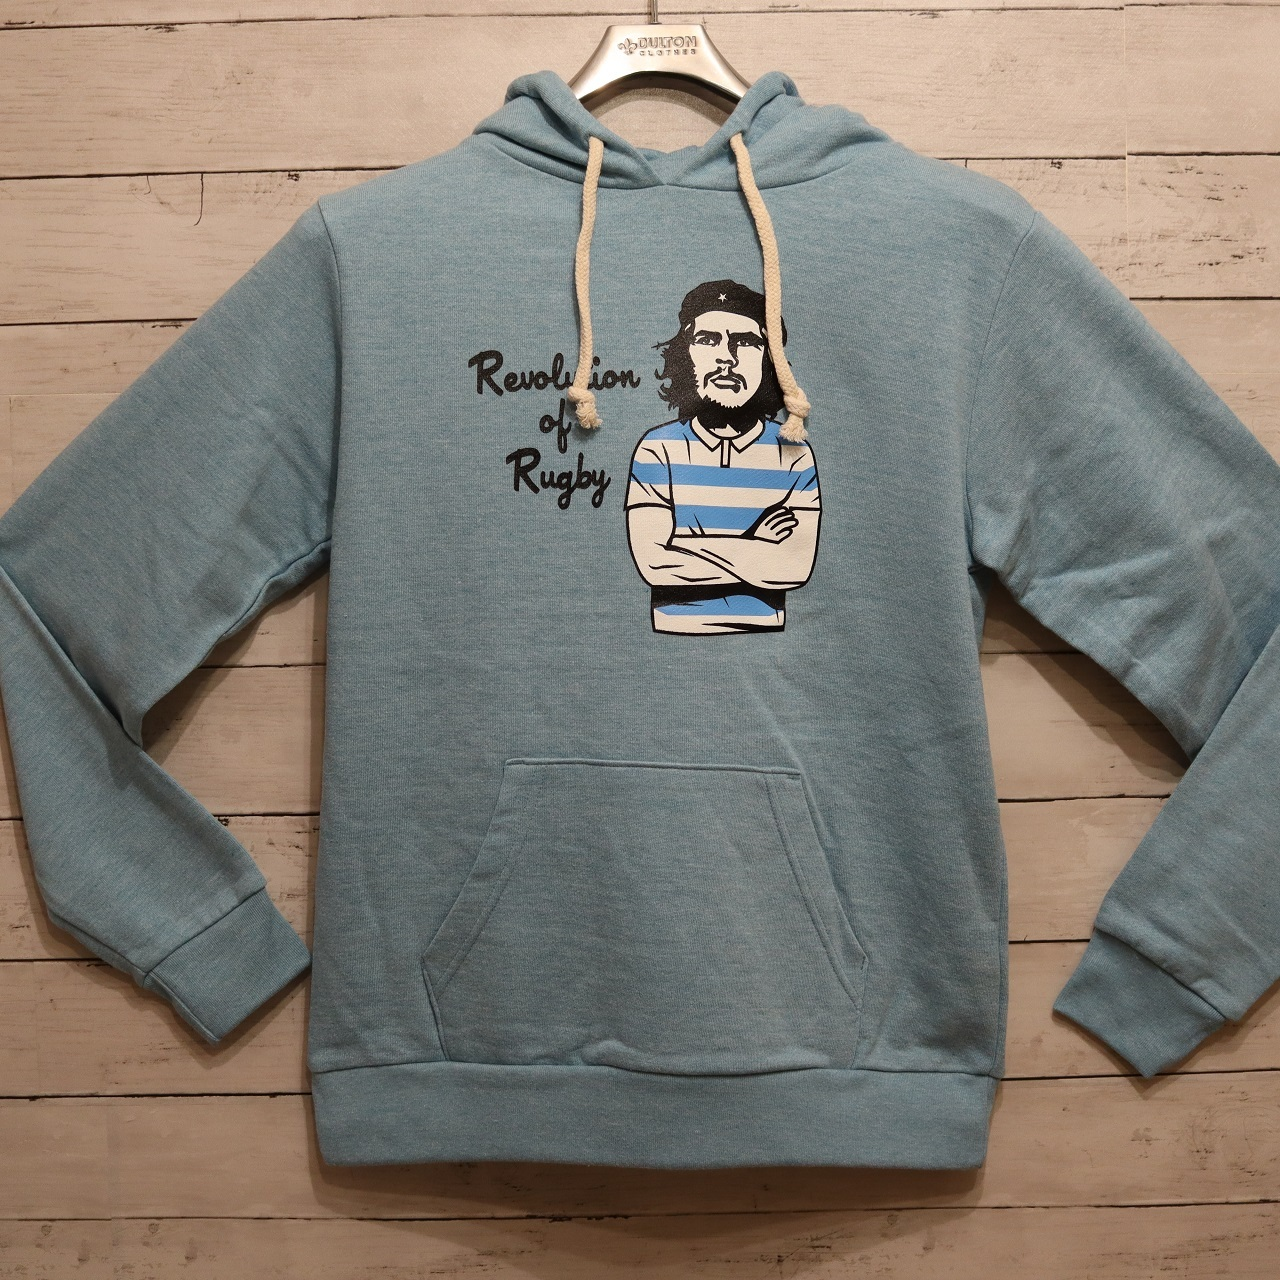 【YBC】Revolution of Rugby Hoody Blue